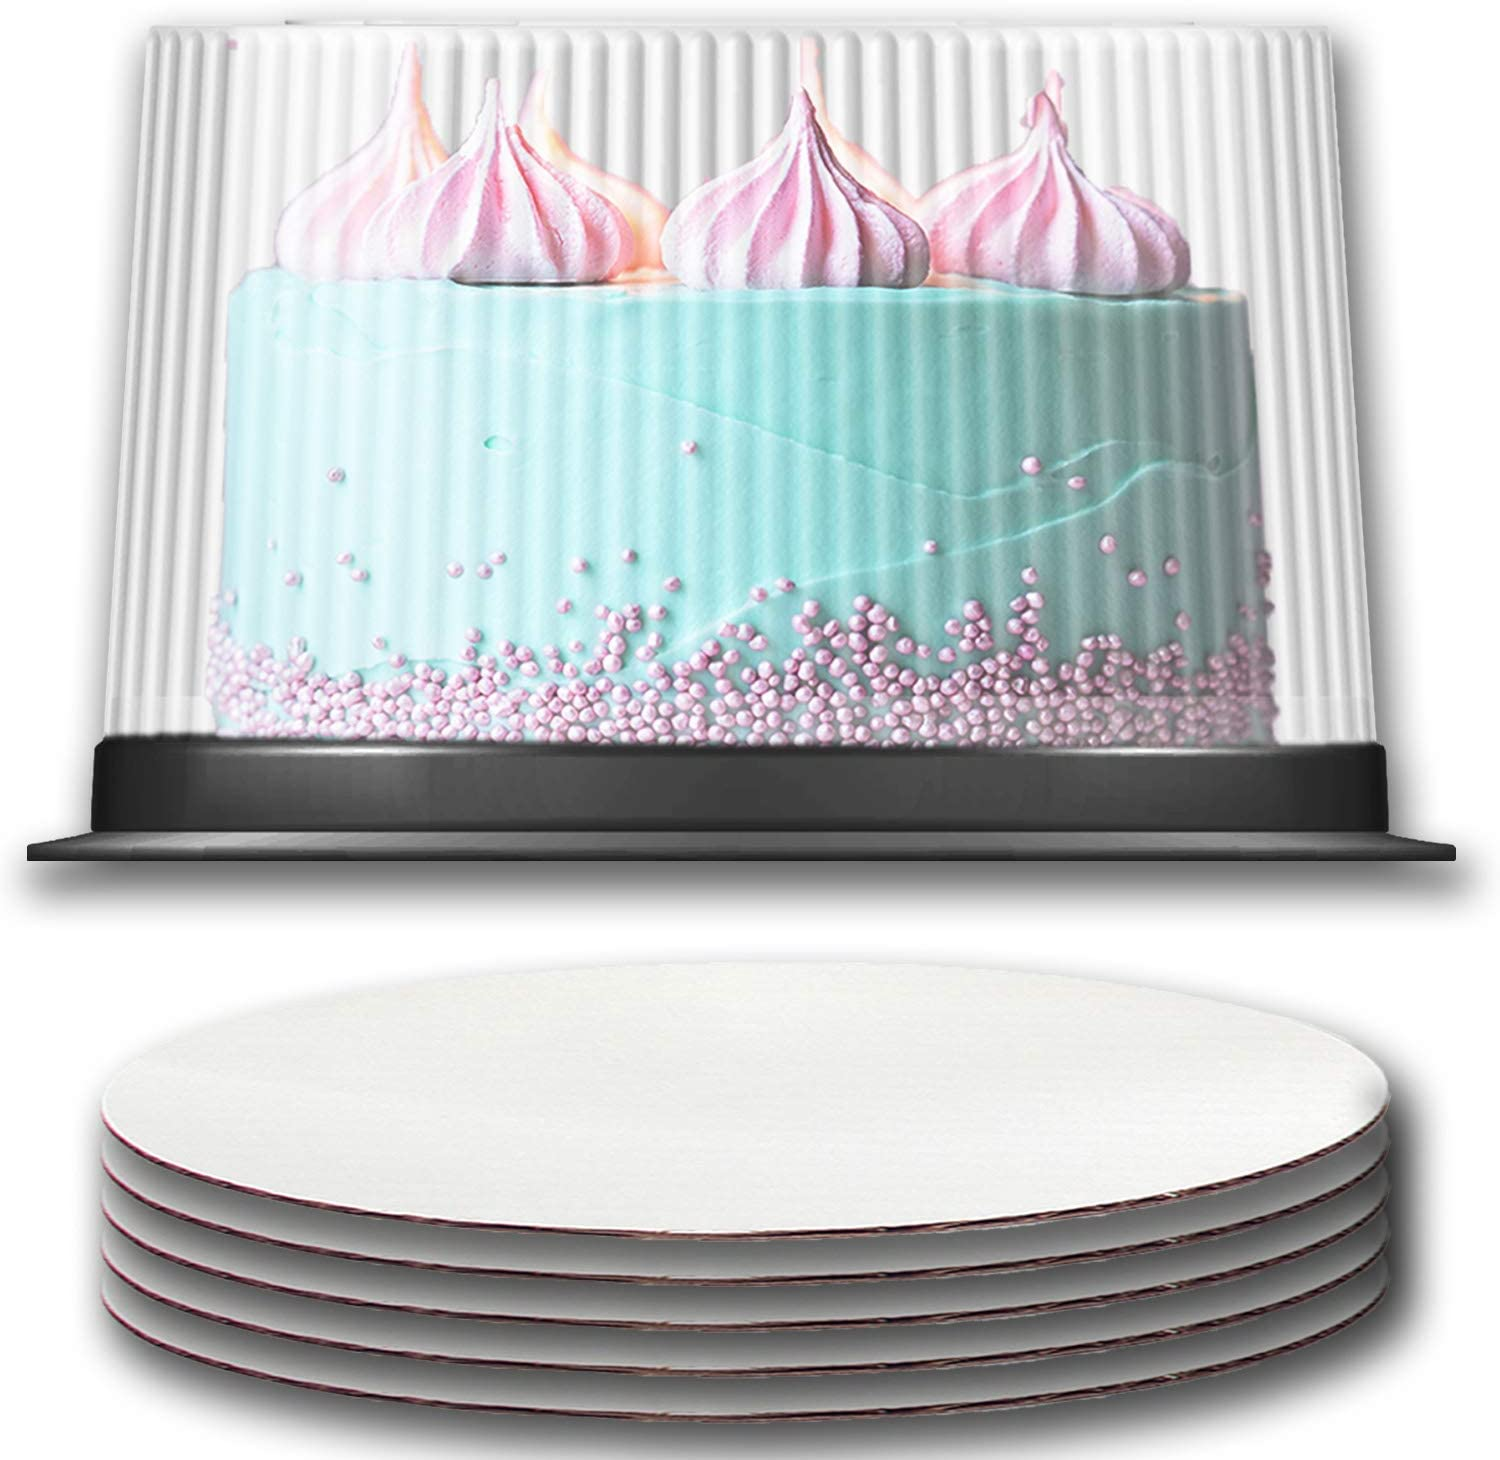 Plastic Cake Container with Clear Dome Lid 10-11 Inch and Cake Boards 10 inch, Cake Holder with Lid is for 2-3 Layer Cakes, Cake Board is Round, Cake Supplies, 5 Pack of Each.